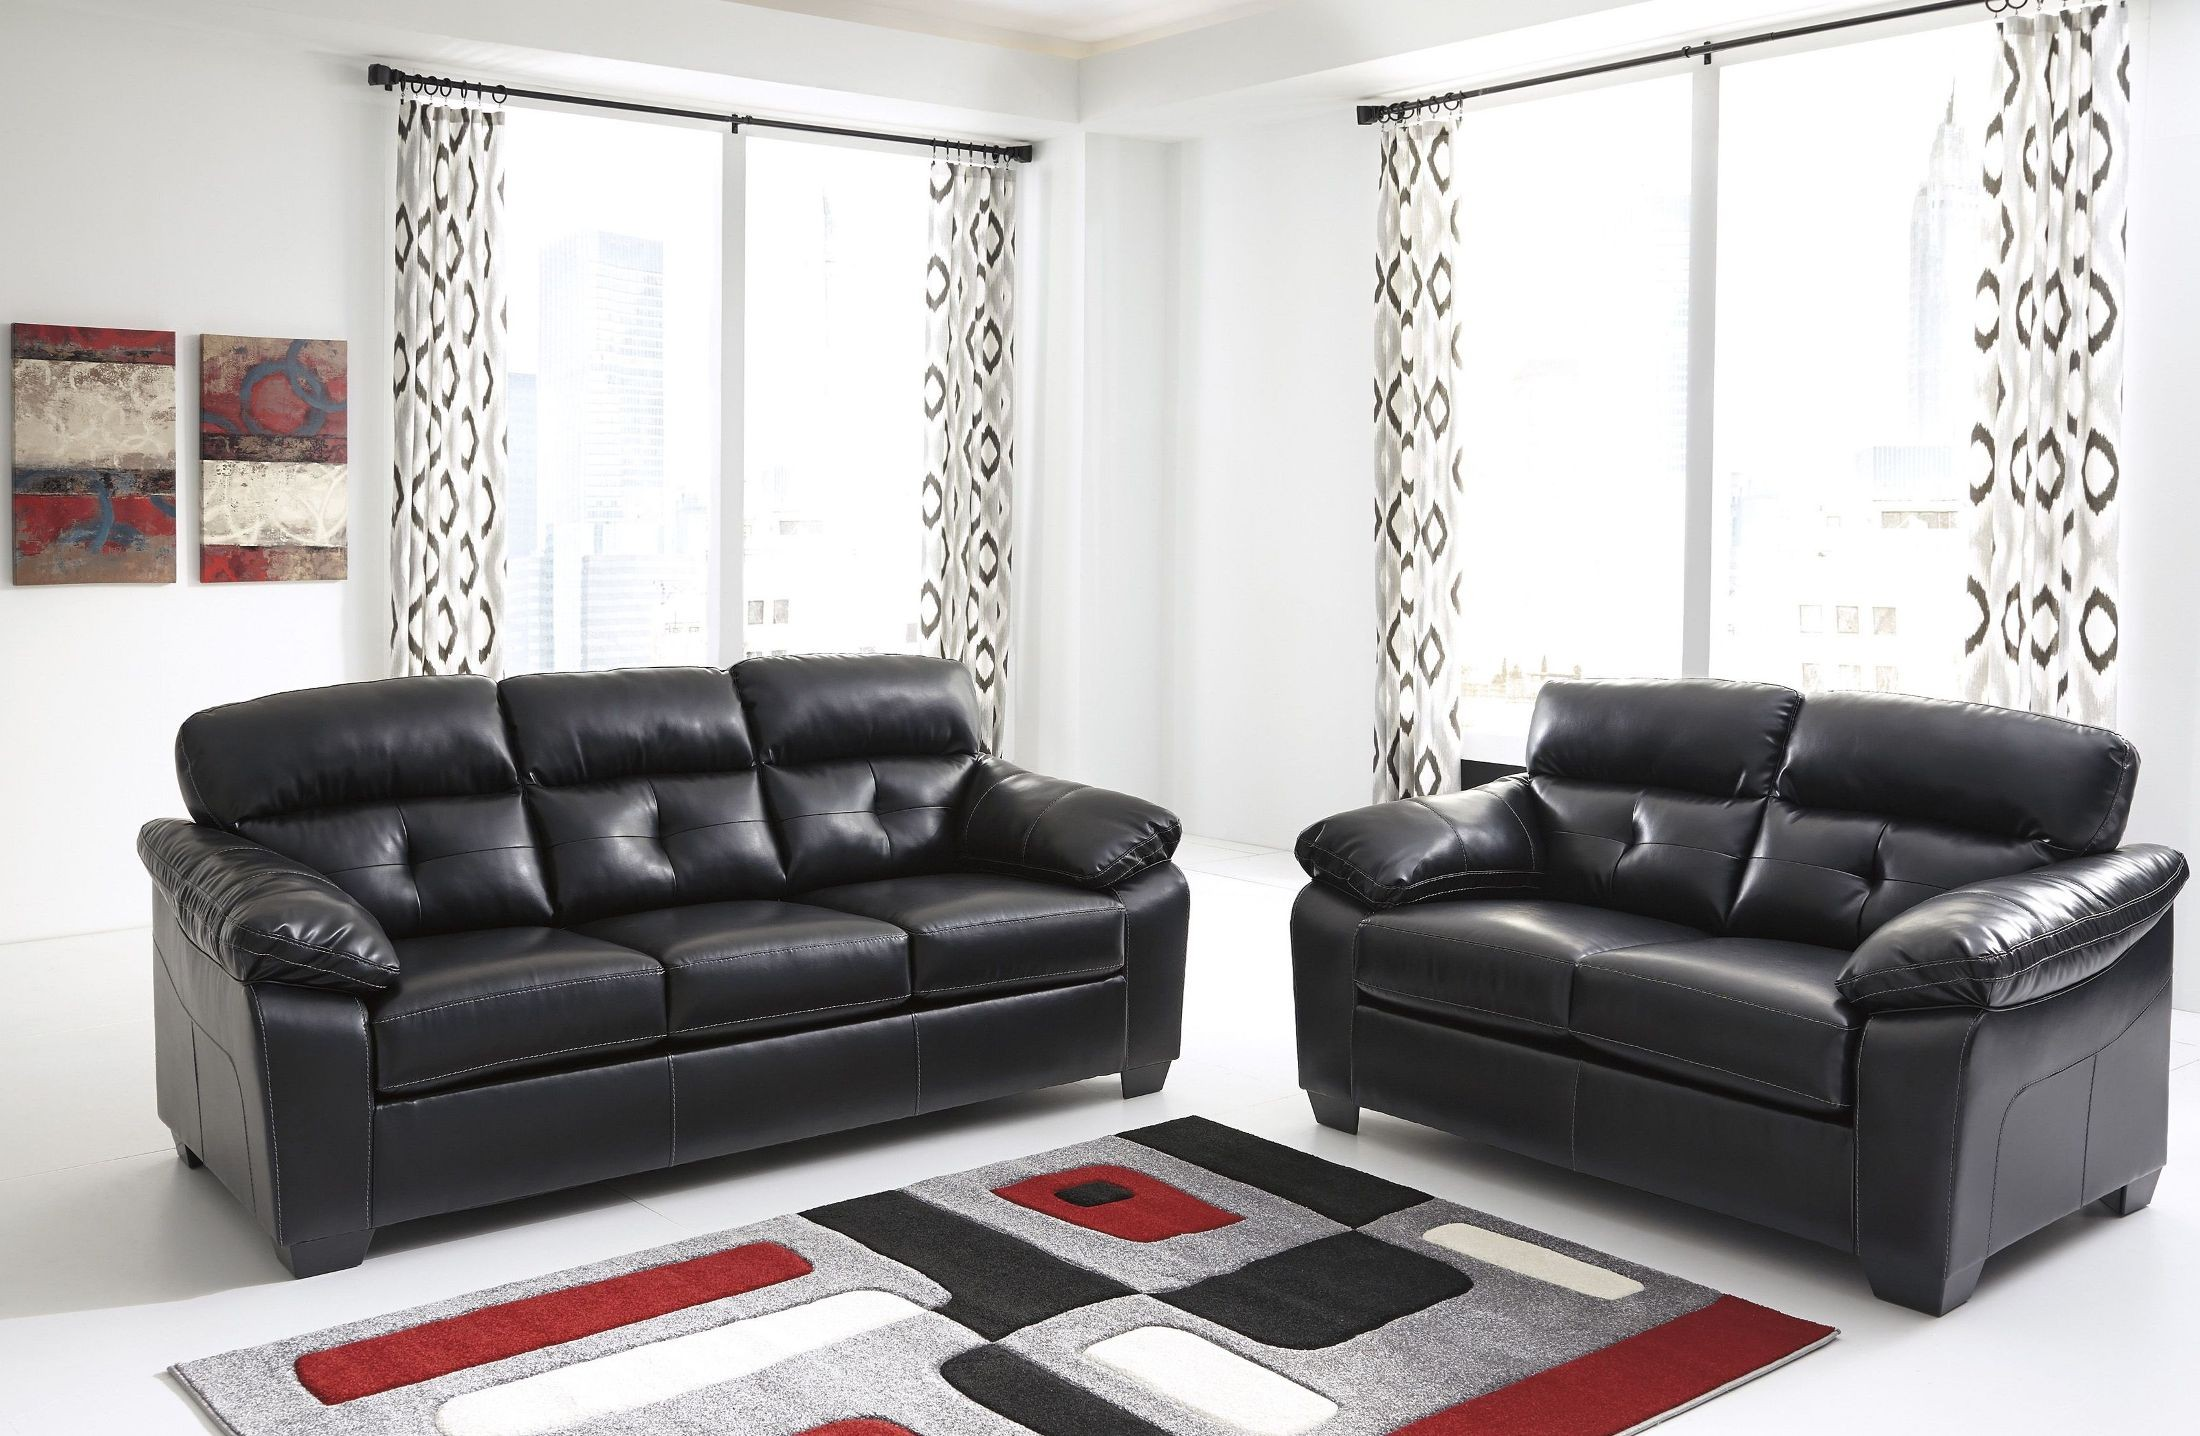 ashley furniture durablend sleeper sofa with chaise lounge cheap bastrop midnight living room set from ...